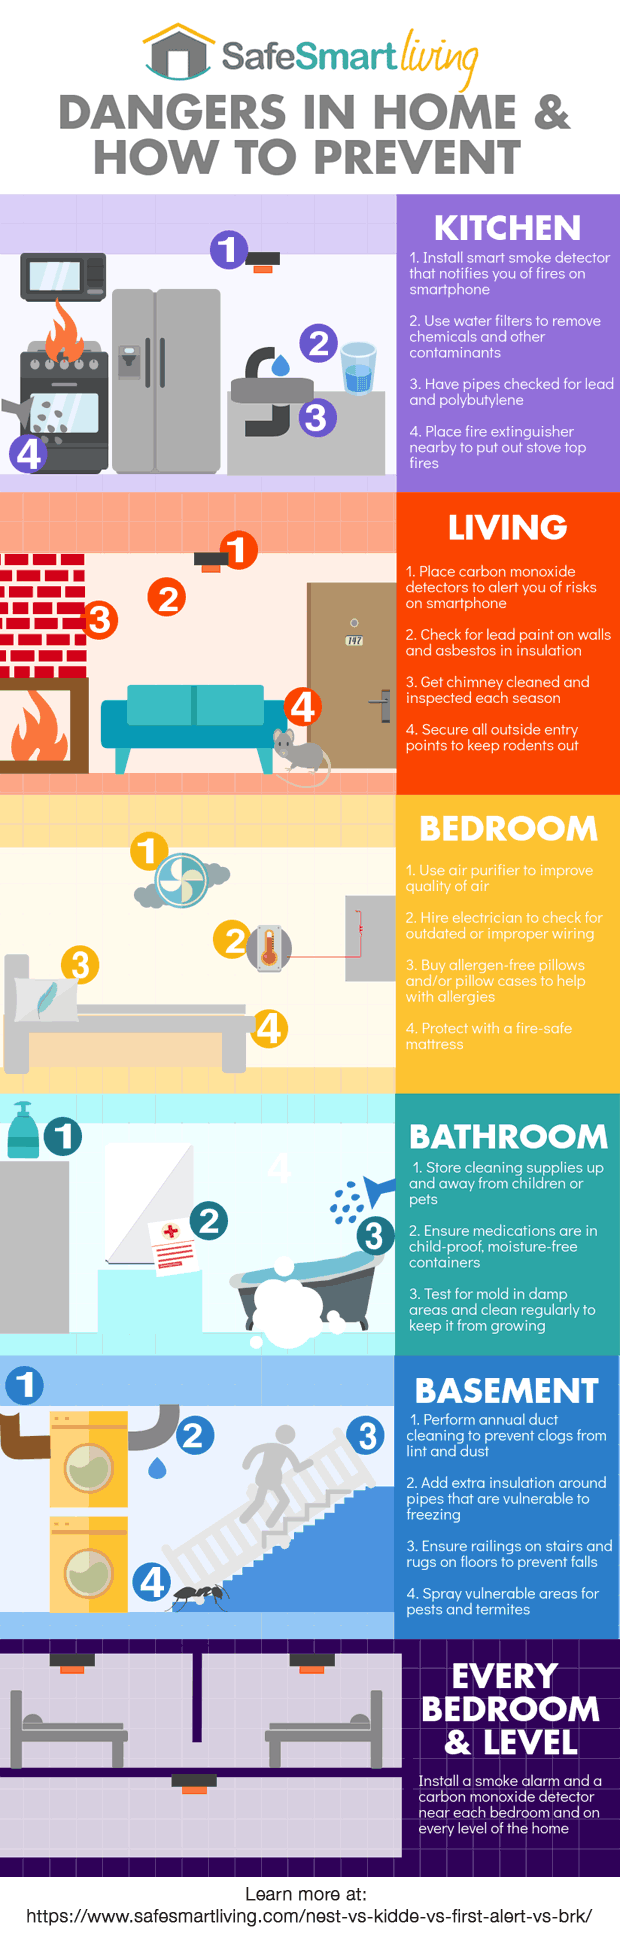 Infographic: Dangers in the Home and How to Prevent